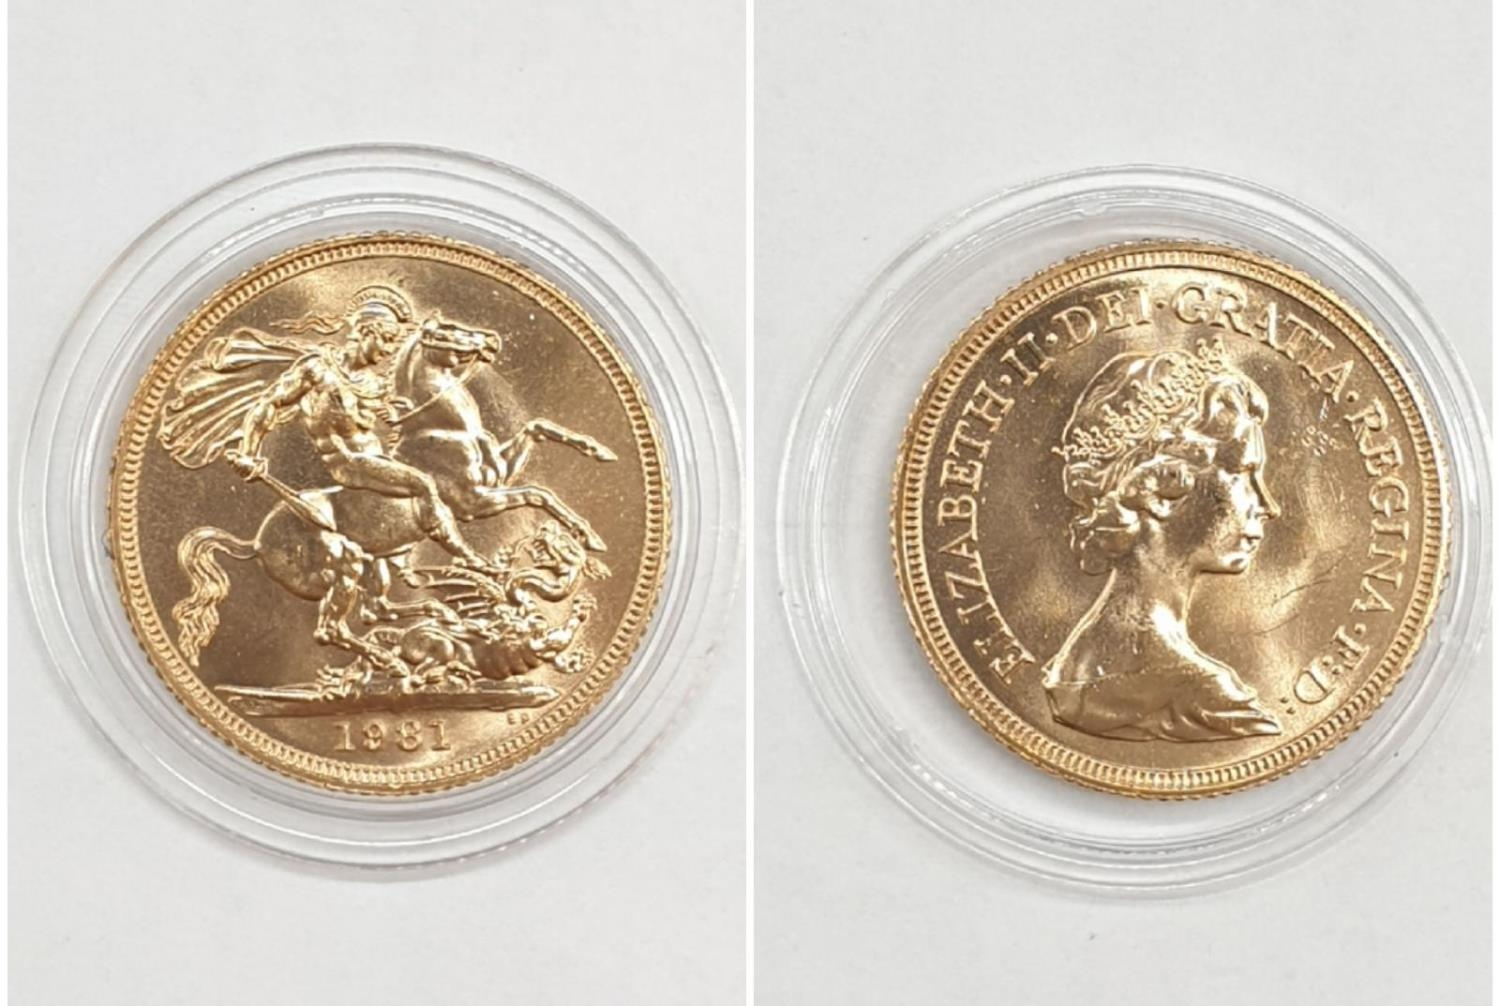 1981 Gold Sovereign in capsule